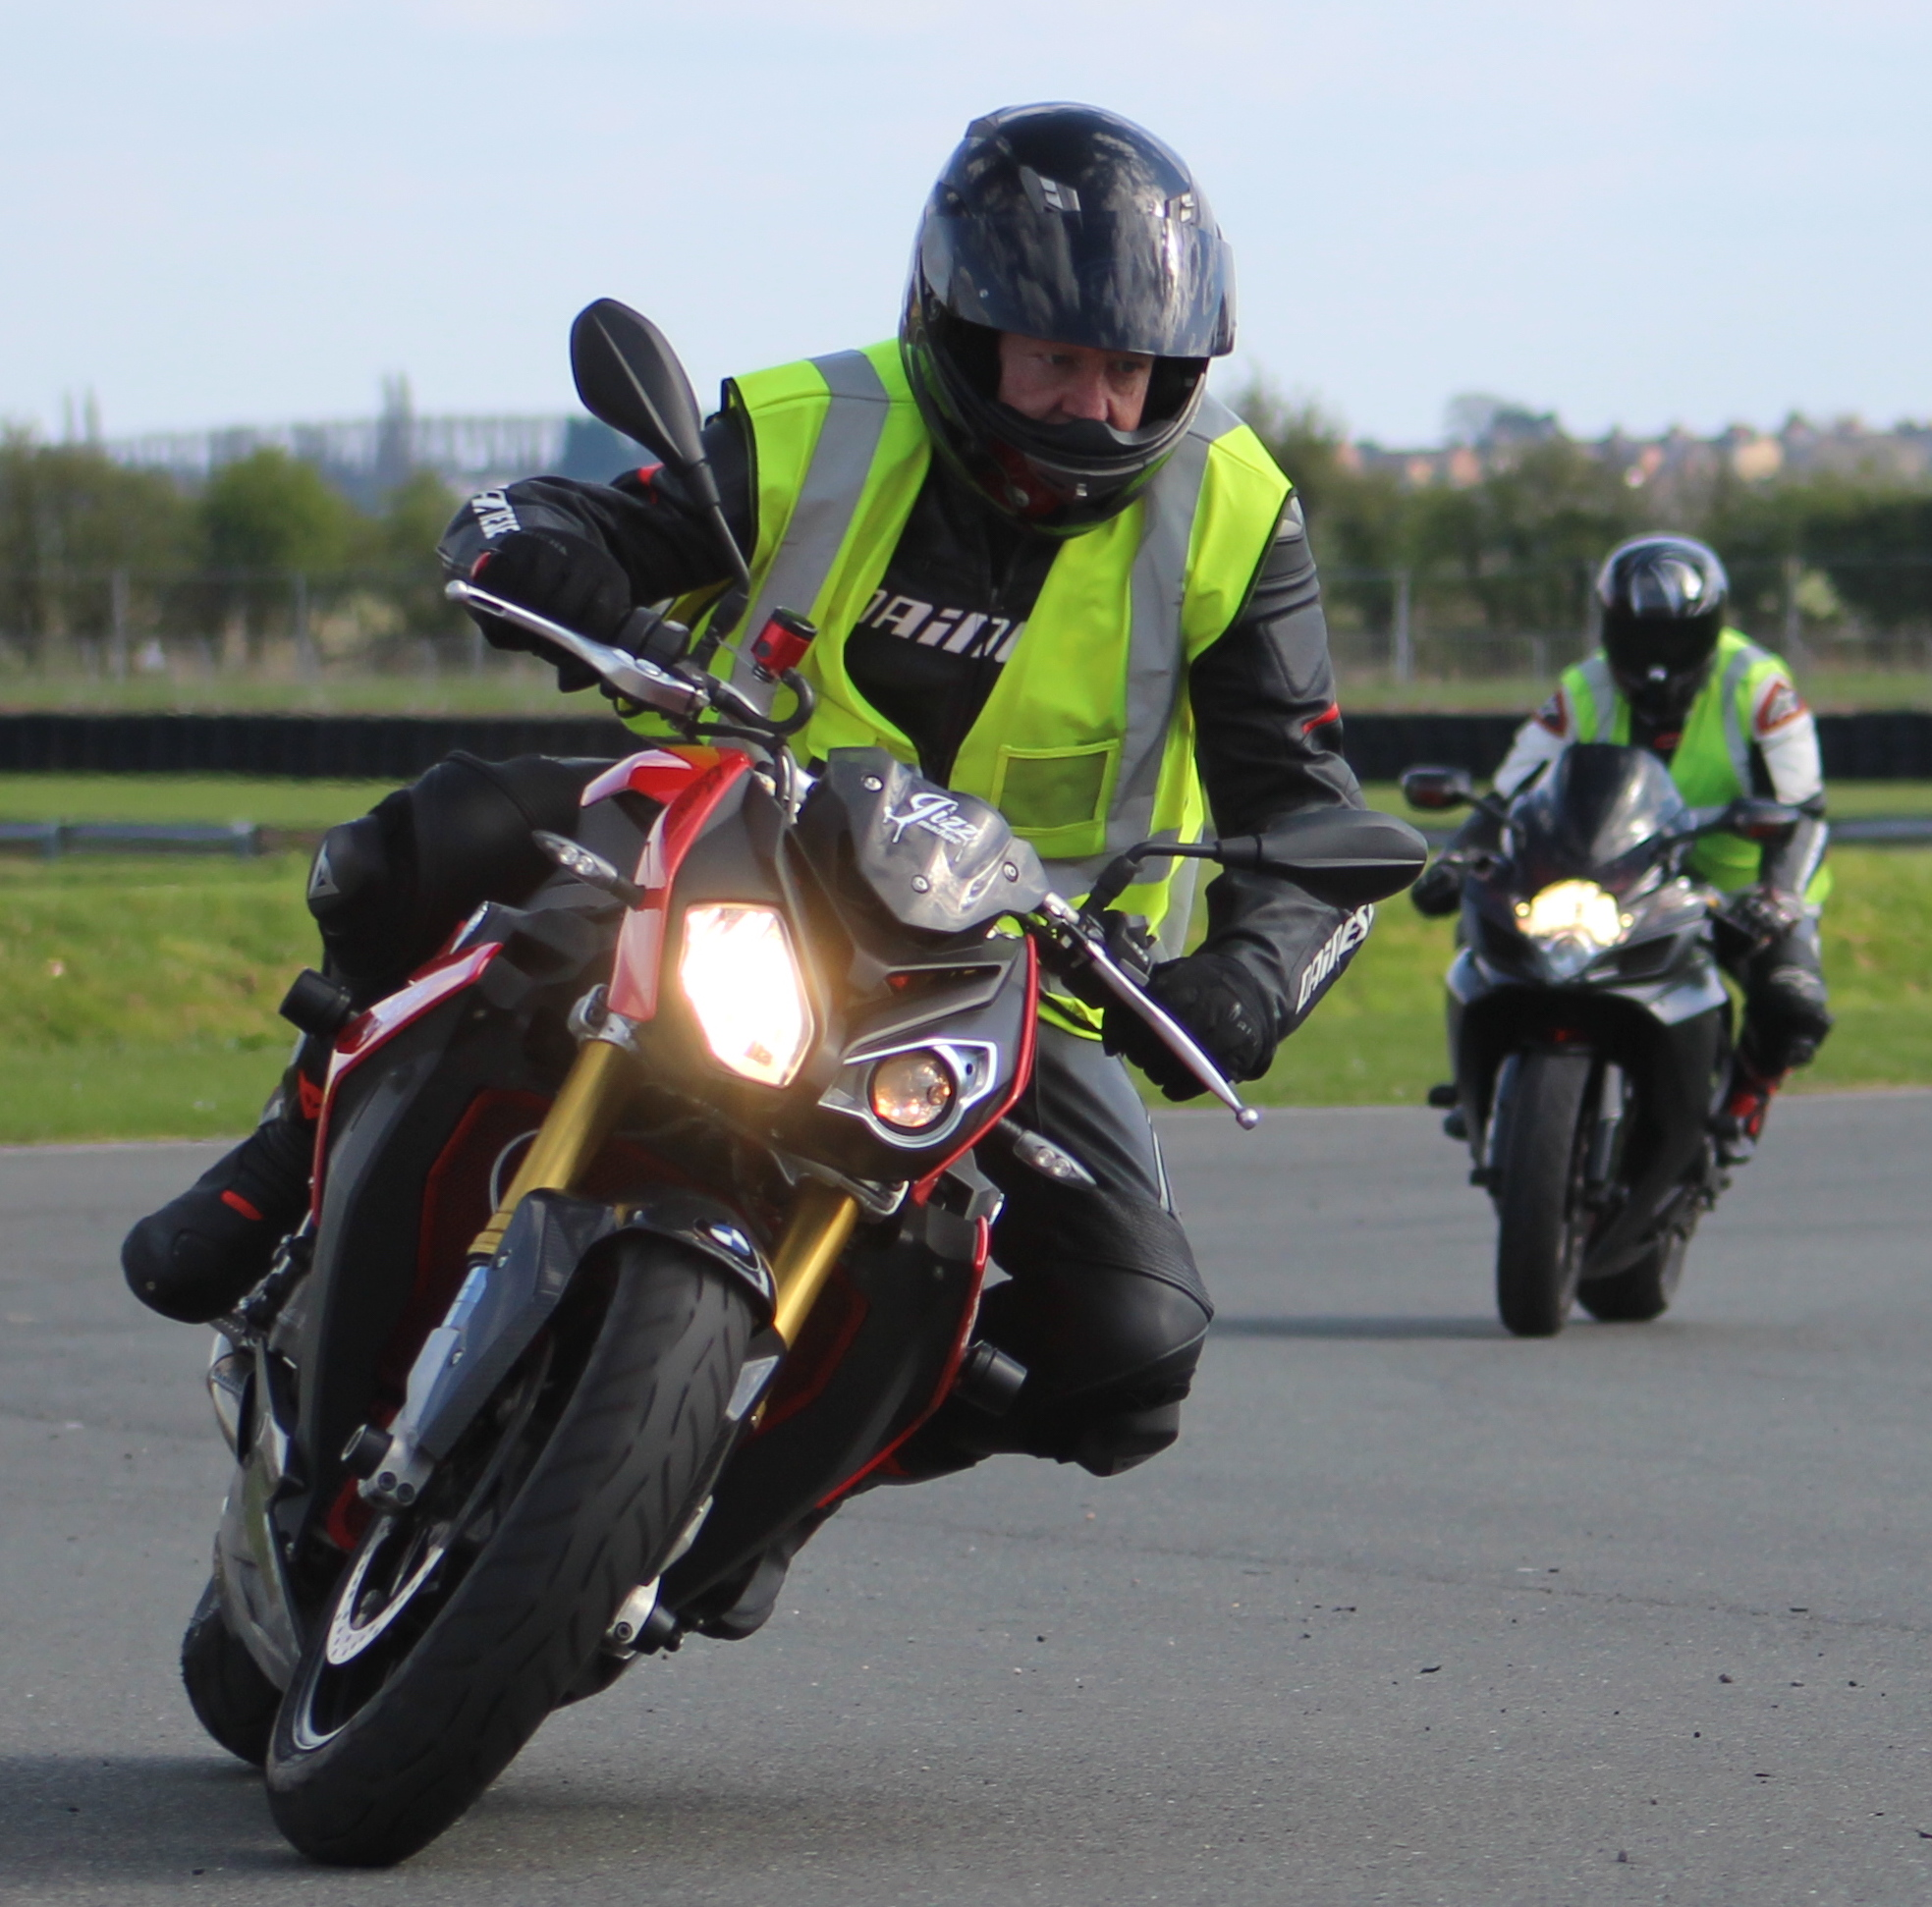 Motorcycle training, Motorcycle test,  CBT, Direct Access in Leicester, Dover, Desford, Kings Lynn,  Sutton Coldfield, Tamworth, Lichfield, Nantwich, Ruddington, Nuneaton, Coventry, Hinckley, Derby, Nottingham, Birmingham, Stroud, Lincoln, St Neots, Camberley, Epsom, Kensington, Chelsea, Dagenham, Canvey Island, Chichester, Cirencester, Bristol, Bath, Cheltenham, Kettering, Kidderminster, Stevenage, St Albans, Cardiff, Leeds, Manchester, Warwick, Chester, Glasgow,Slough, Maidenhead, High Wycombe